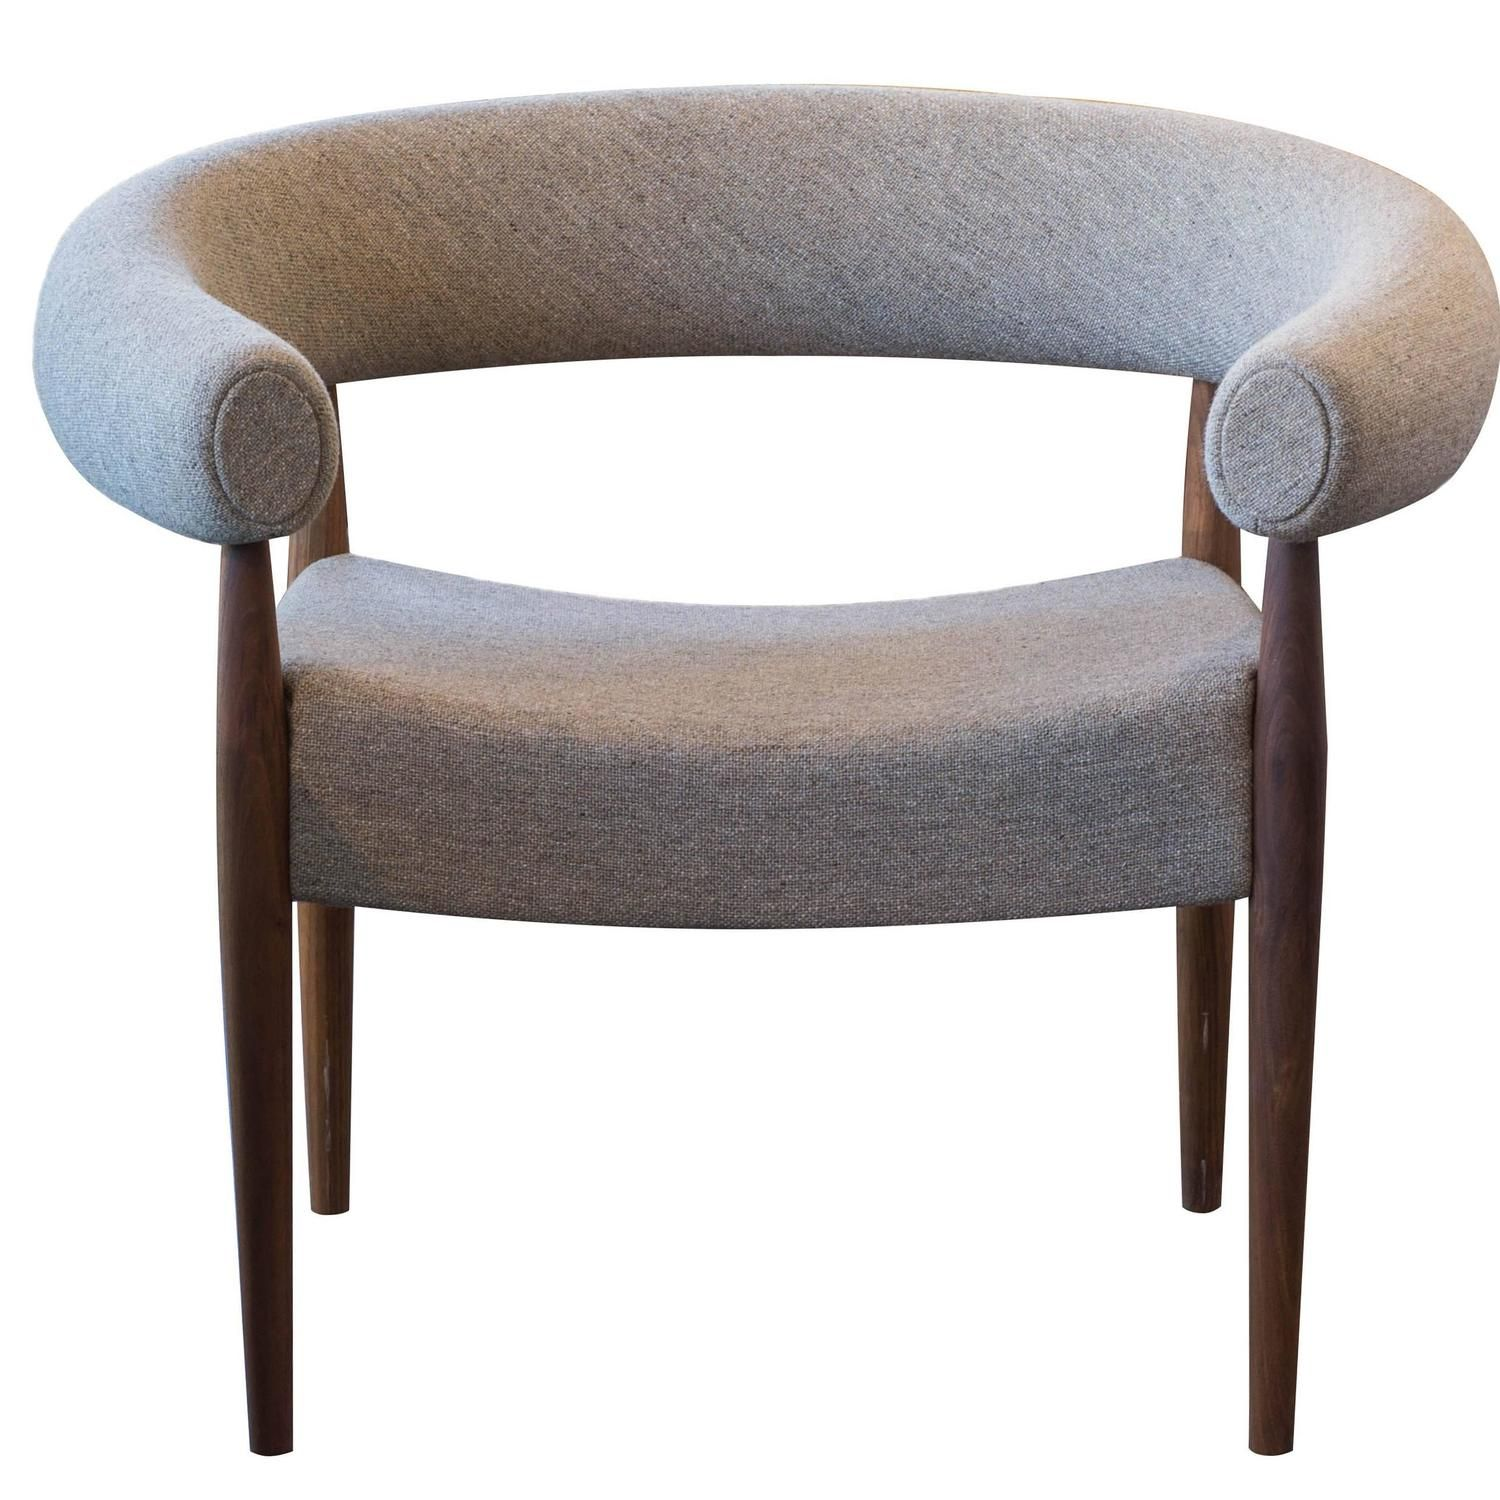 Genial Nina Ditzel Ring Chair | From A Unique Collection Of Antique And Modern  Chairs At Https://www.1stdibs.com/furniture/seating/chairs/